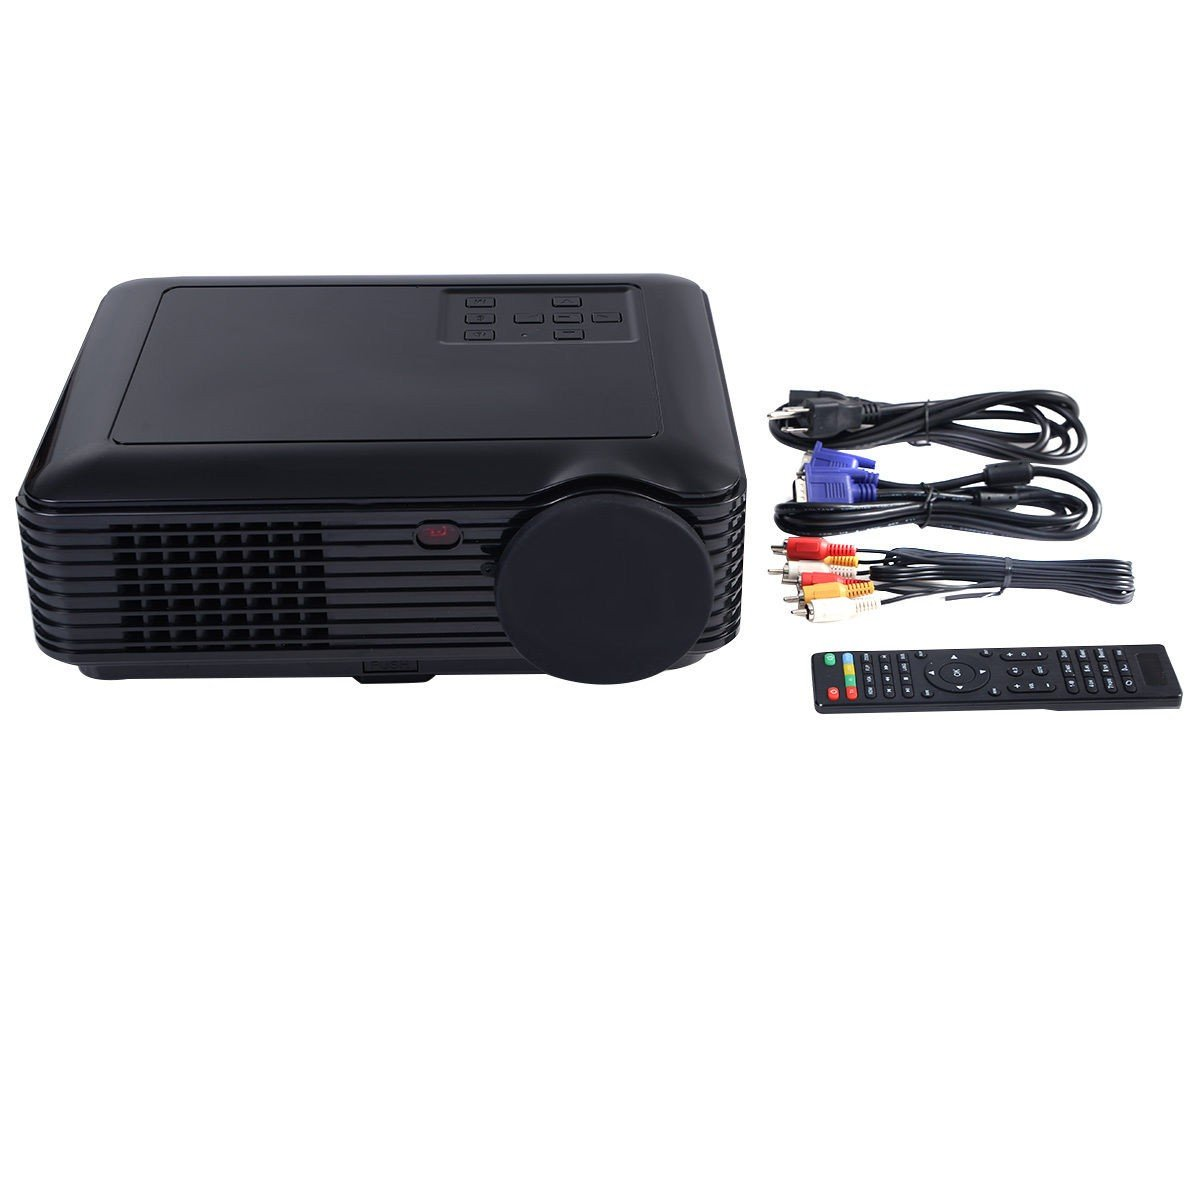 Safstar 2600 Lumens Mini Multimedia Portable Projector LCD LED Video Game Home Cinema Theater Movie Projector